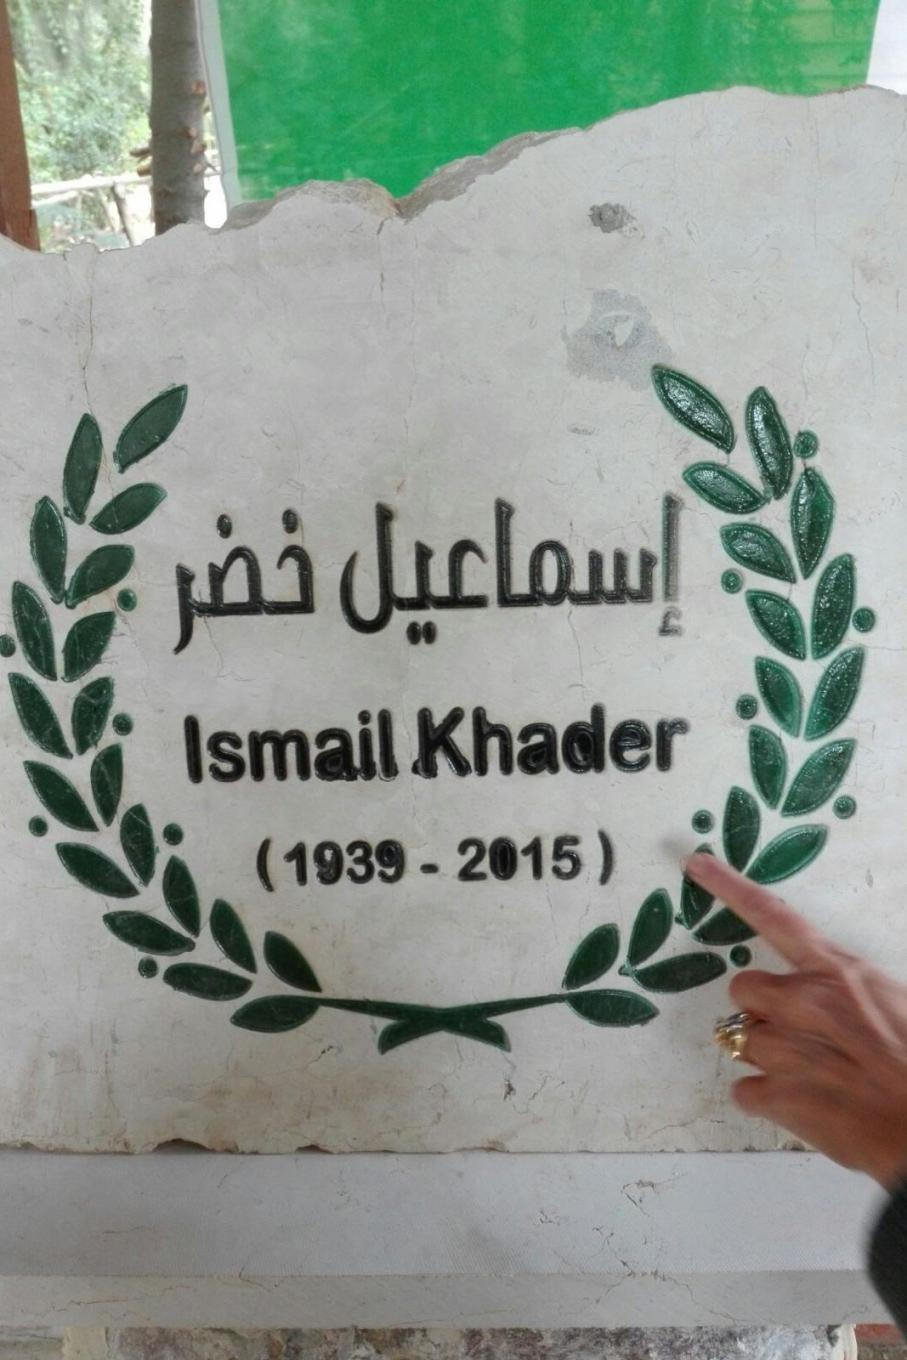 Memorial stone for Ismail Khader